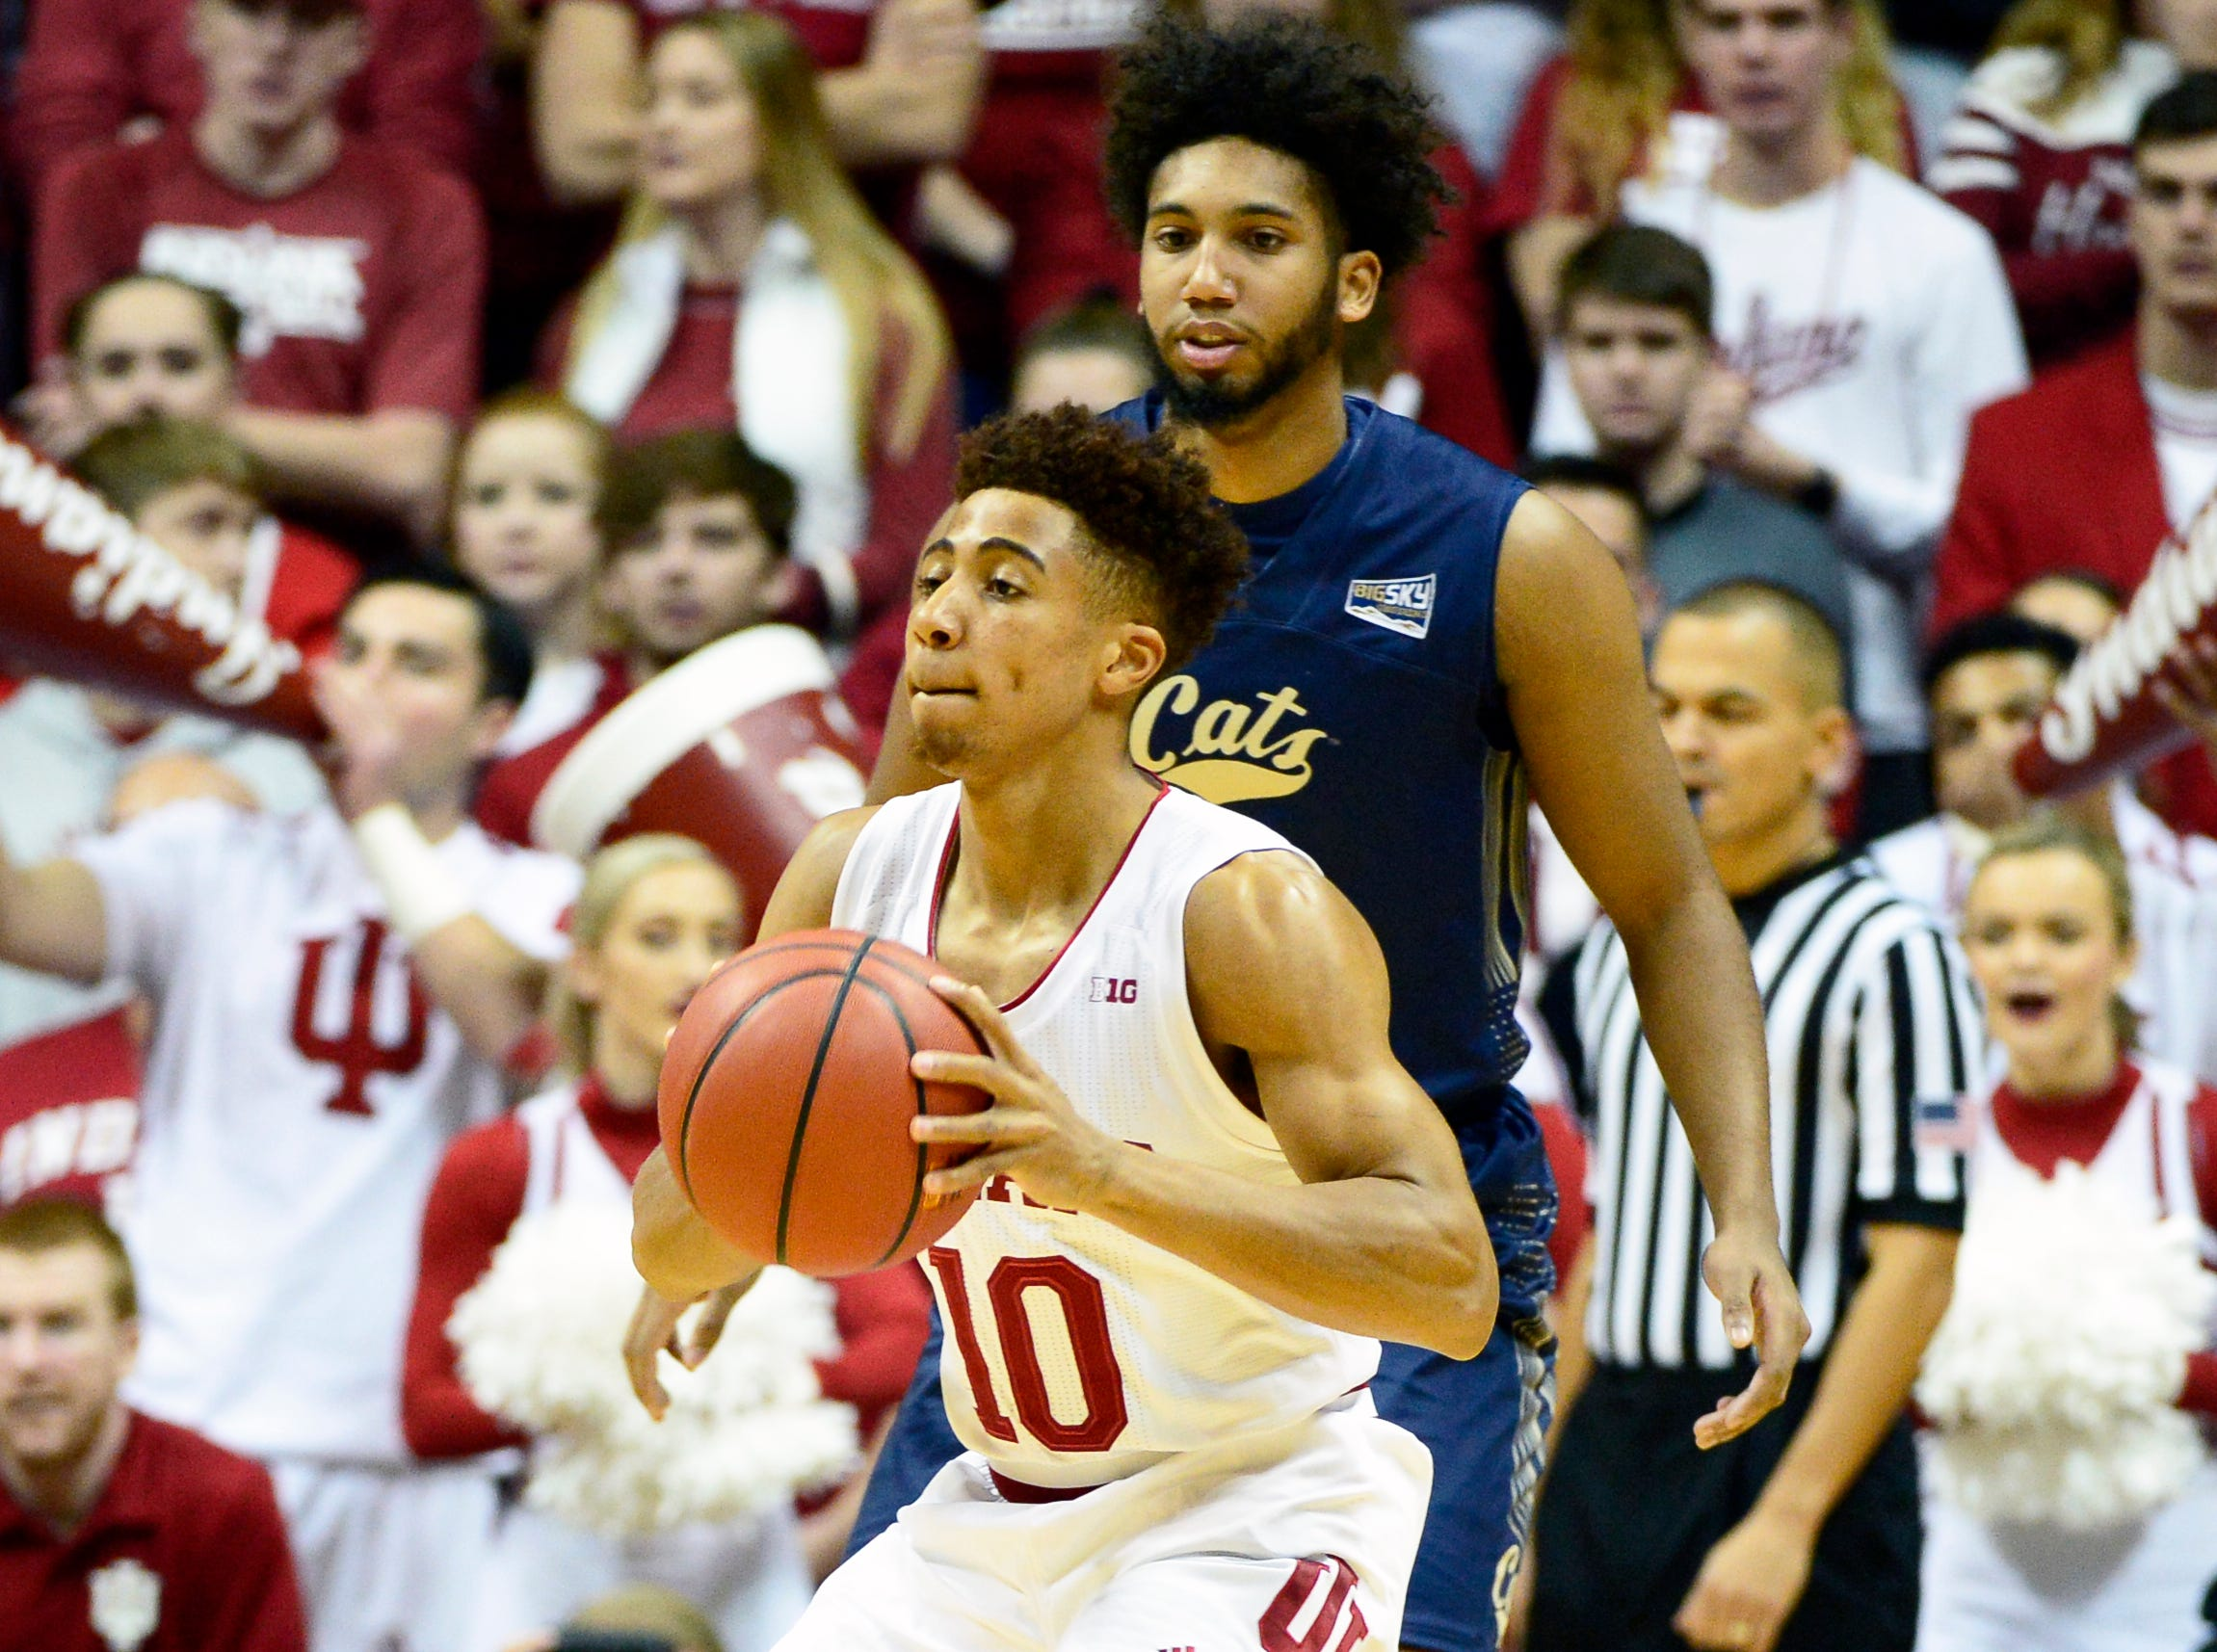 Indiana Hoosiers guard Rob Phinisee (10) looks to pass the ball during the game against Montana State at Simon Skjodt Assembly Hall in Bloomington, Ind., on Friday, Nov. 9, 2018.